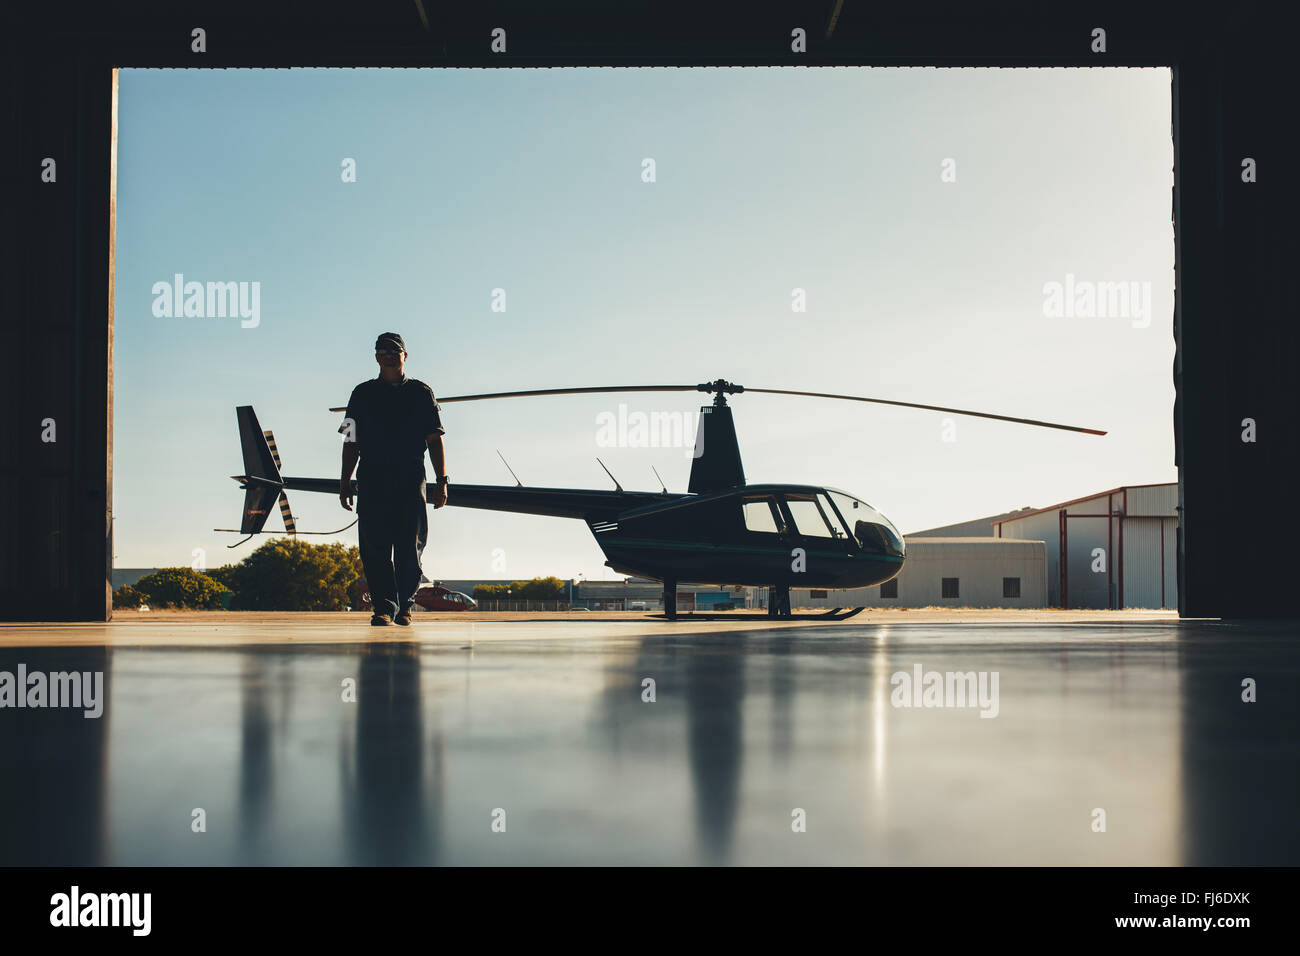 Silhouette of helicopter with a pilot in the airplane hangar. Pilot walking away from helicopter parked outside - Stock Image